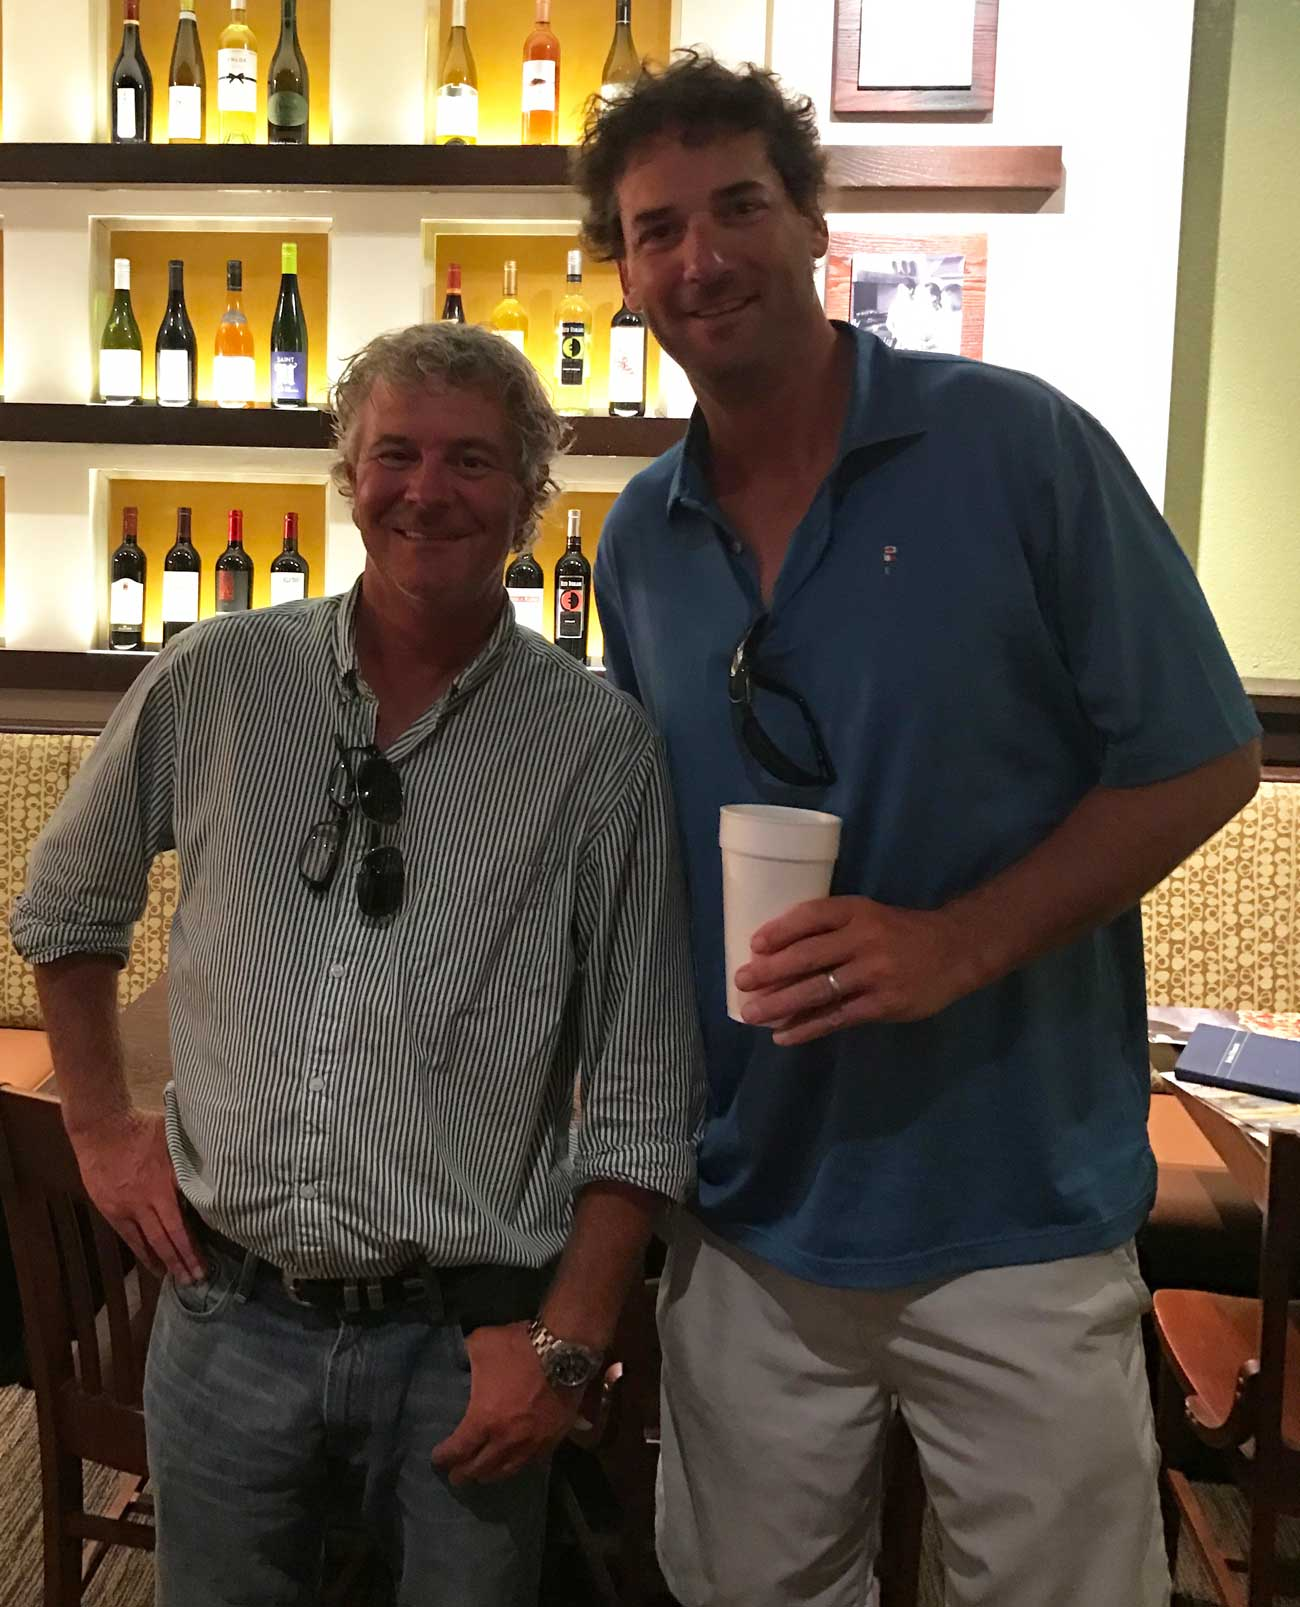 Tad King (left) and Rob Collins (right) at the Carrabba's where their partnership first began.